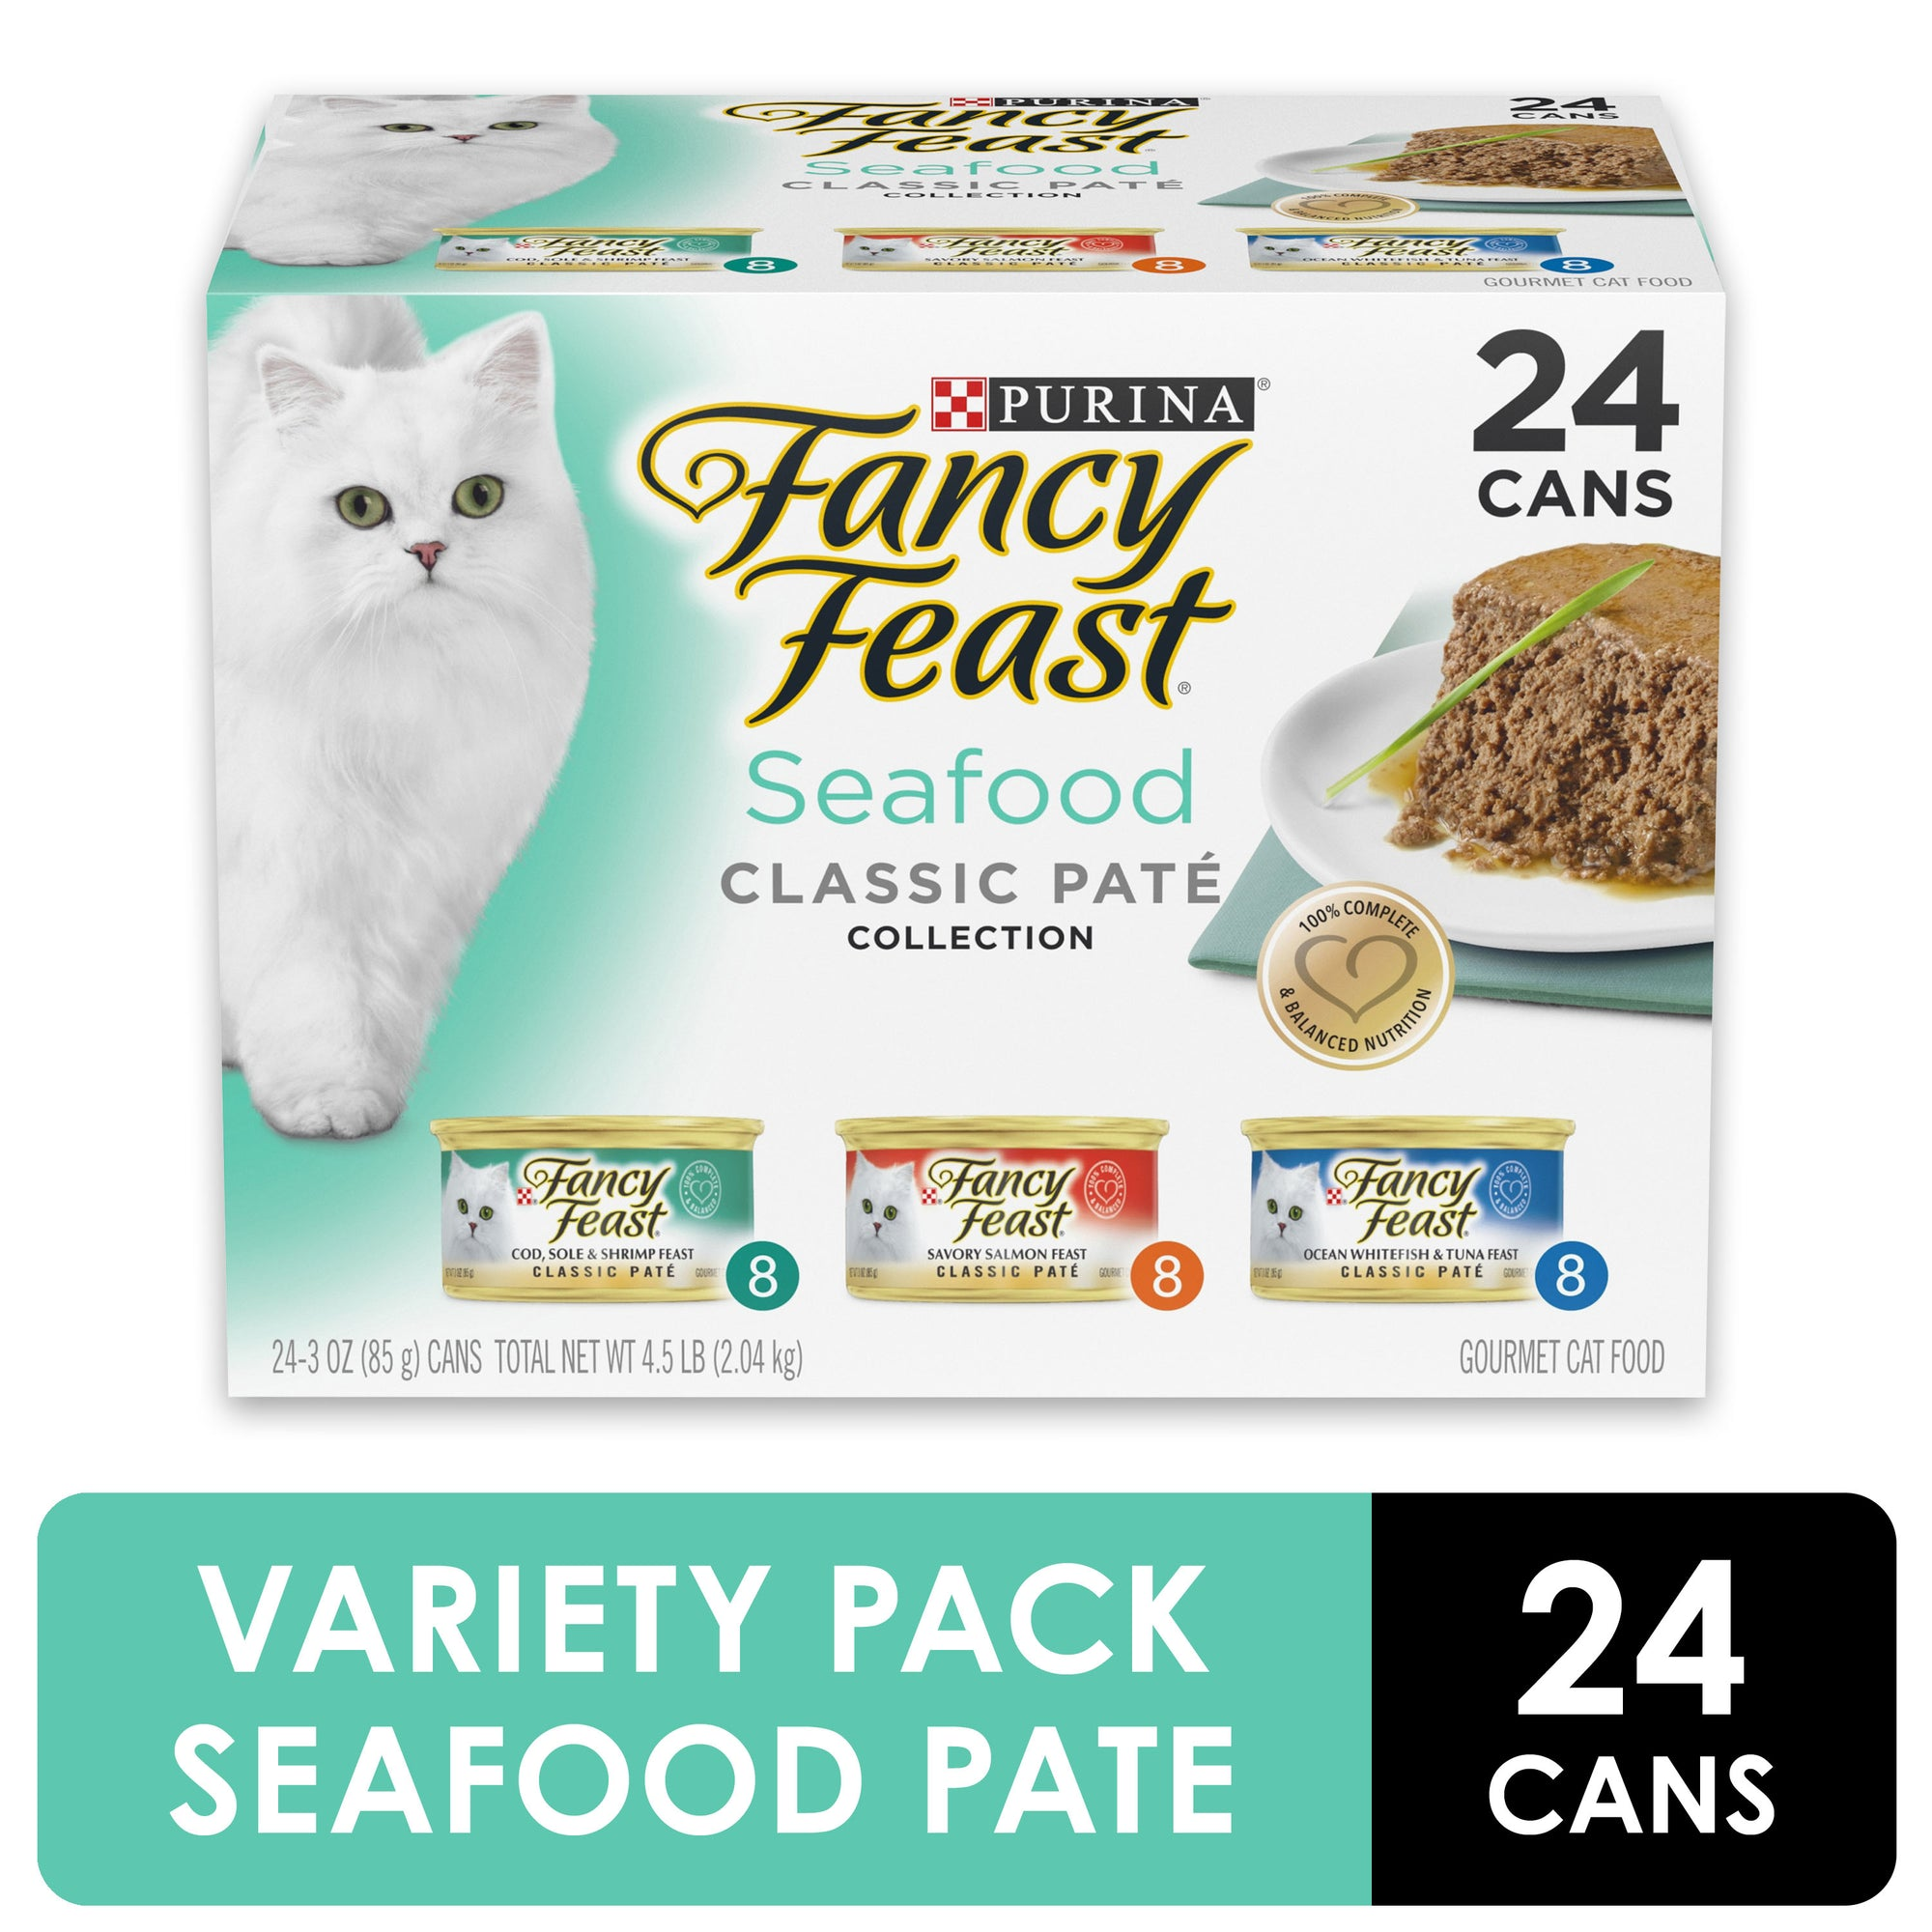 (24 Pack) Fancy Feast Grain Free Pate Wet Cat Food Variety Pack, Seafood Classic Pate Collection, 3 oz. Cans